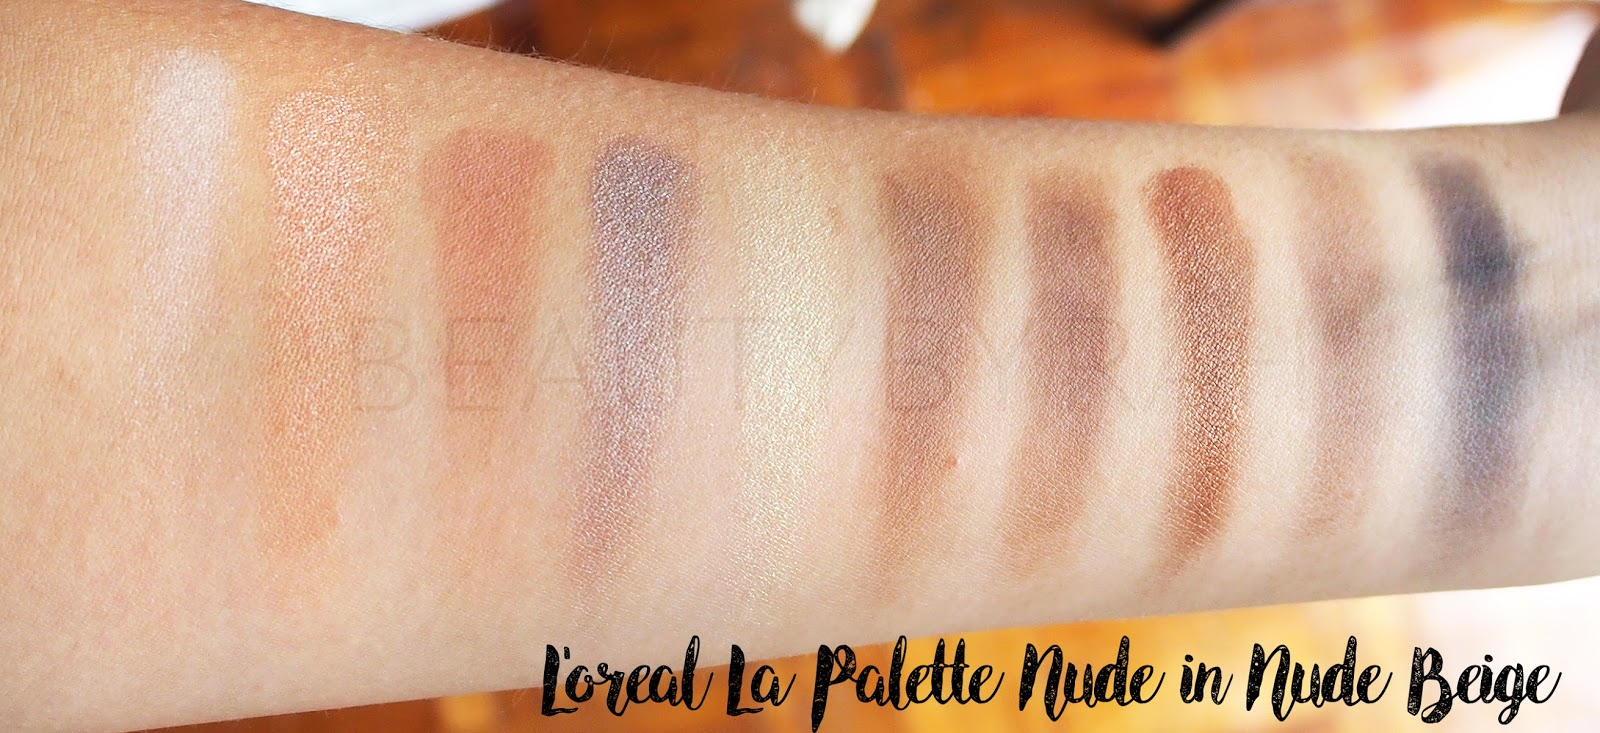 L'oreal la palette nude swatches in nude beige